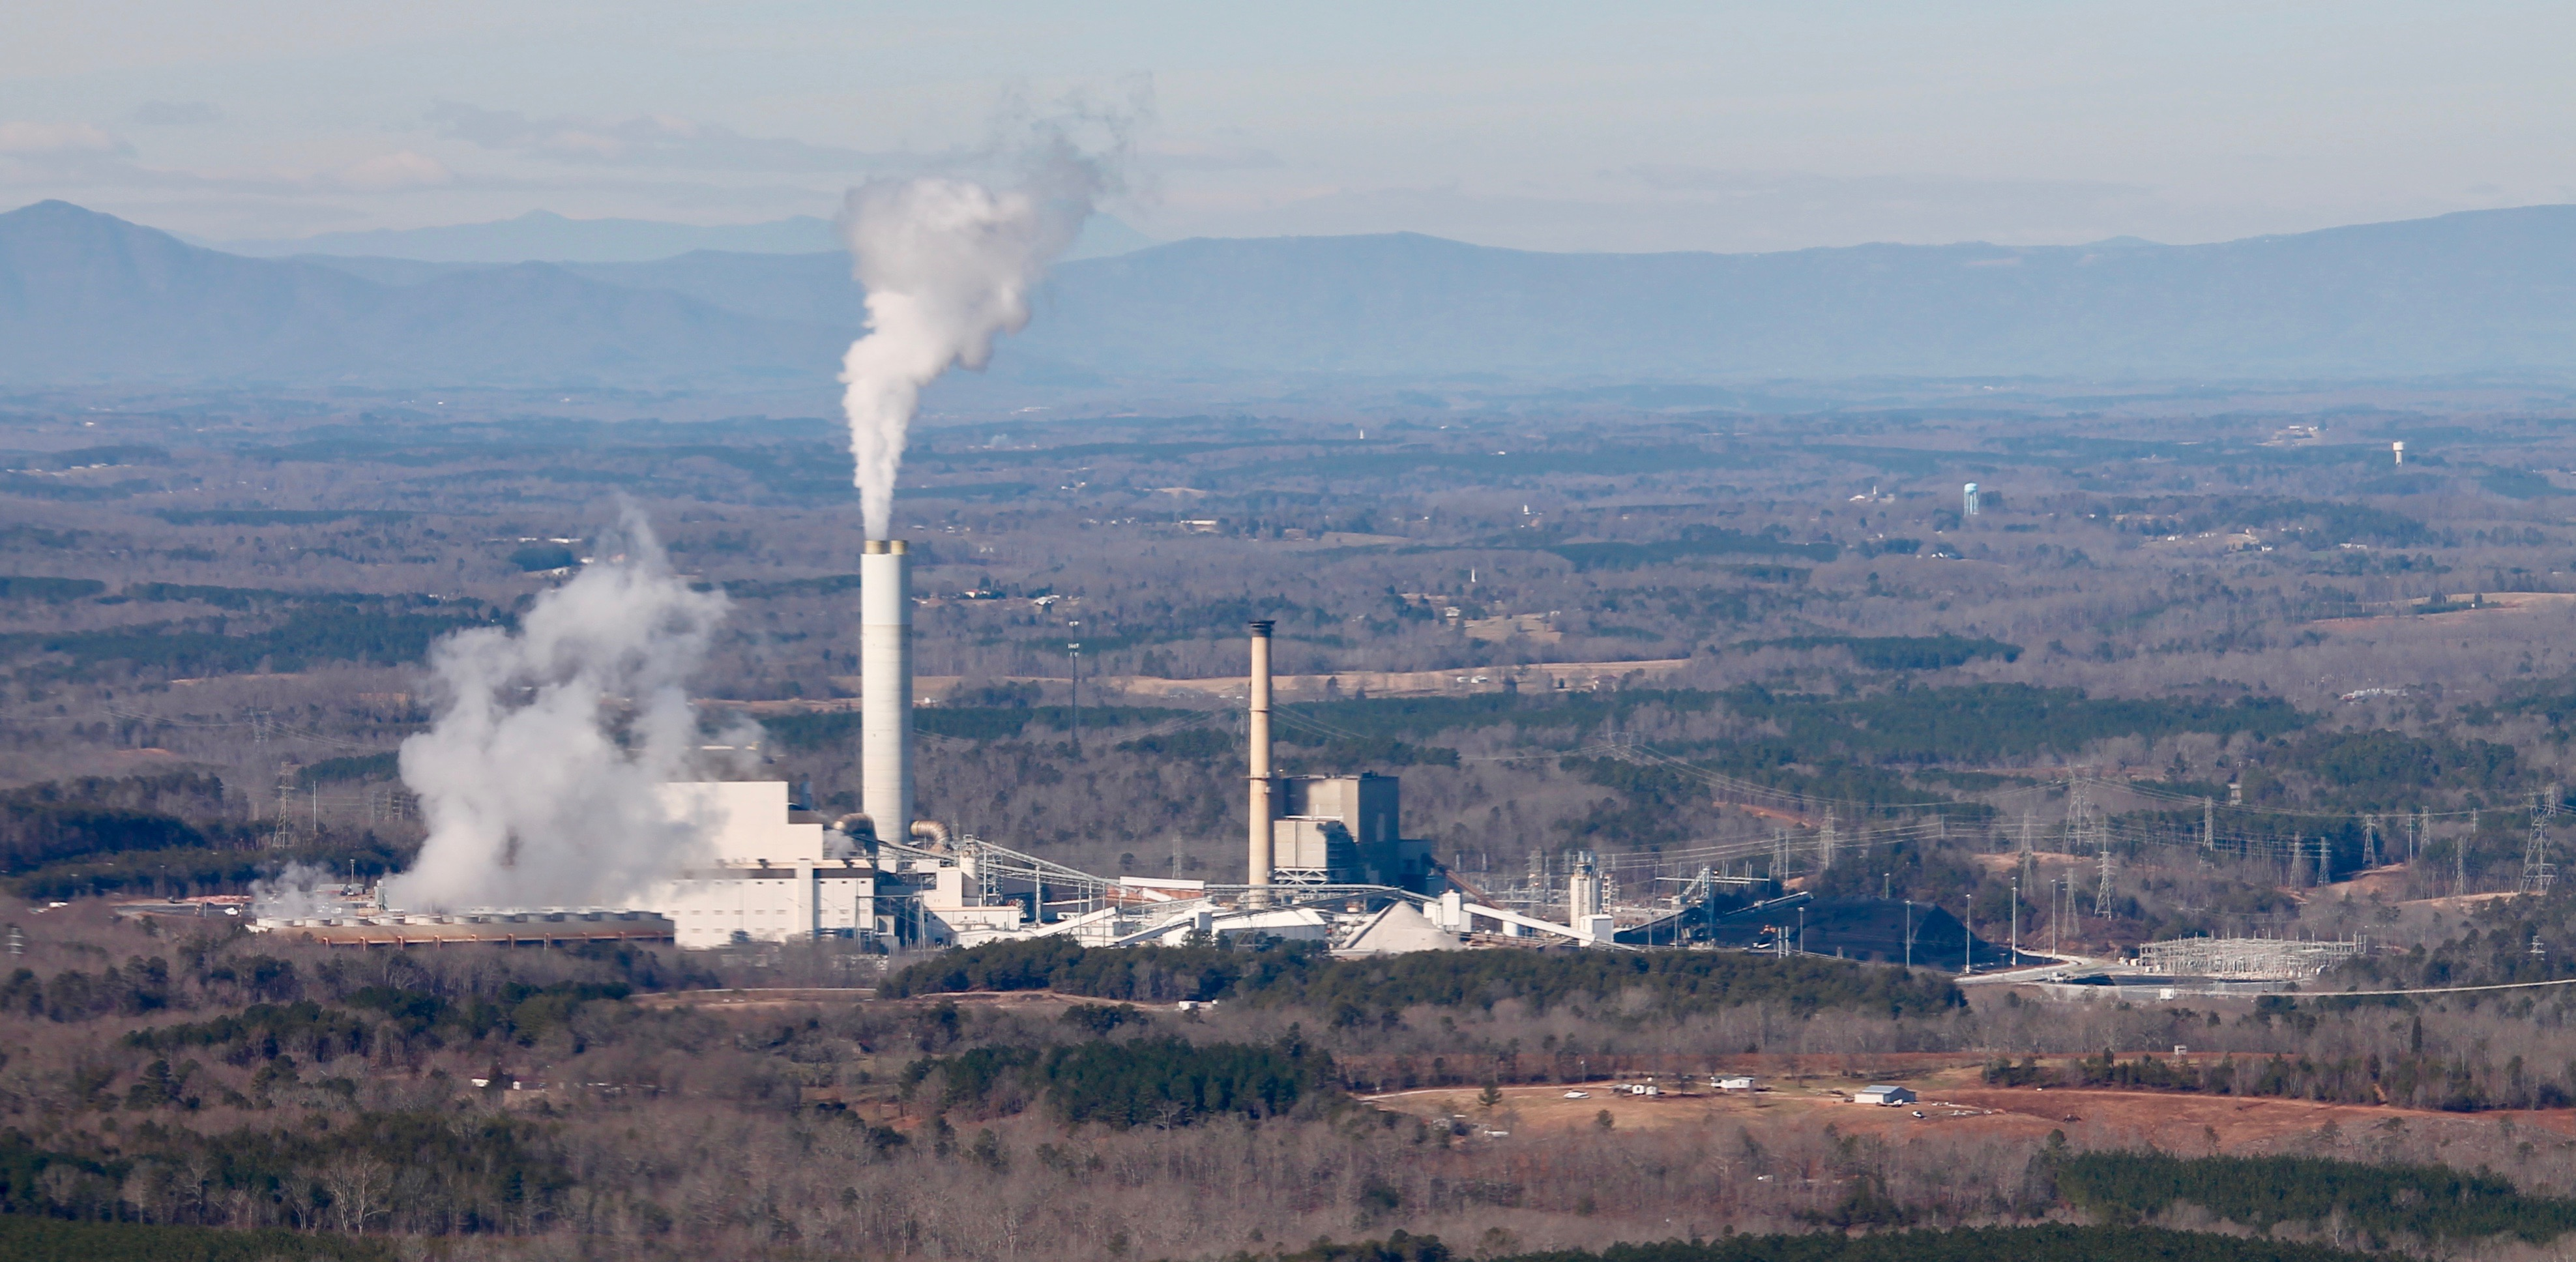 Duke Energy's Cliffside coal plant in NC